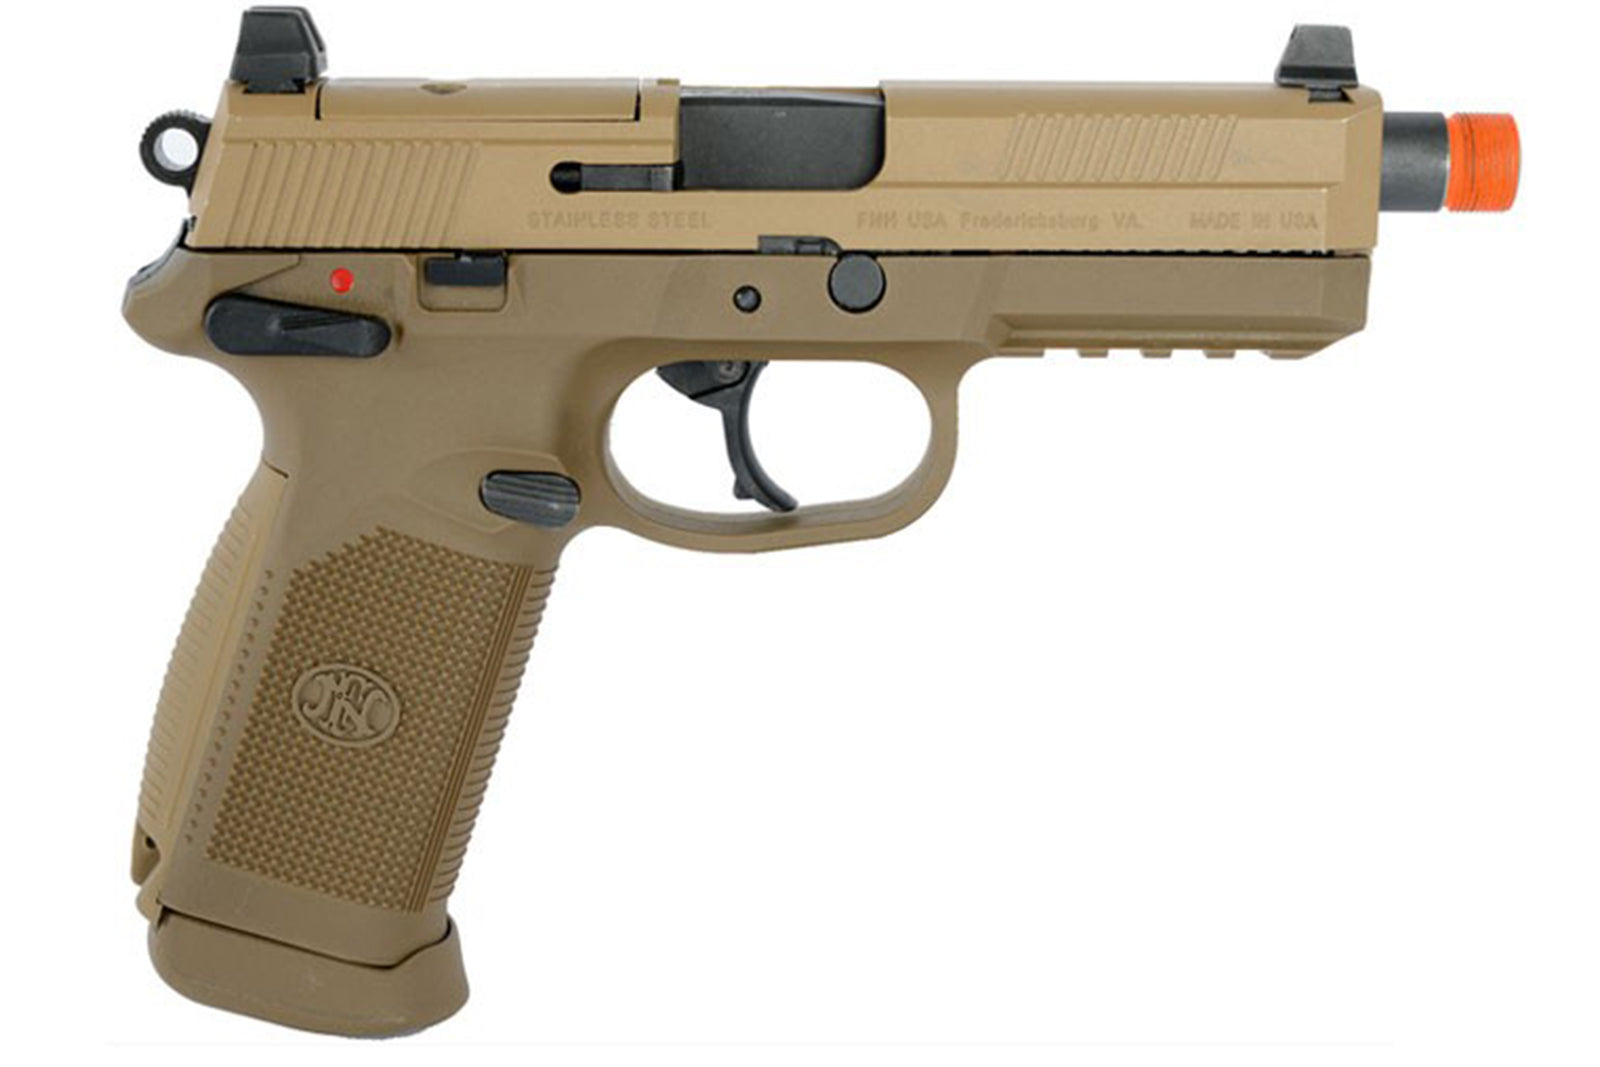 Cybergun FN Herstal Licensed FNX-45 Tactical Airsoft GBB Pistol by VFC w/ EXTRA mag